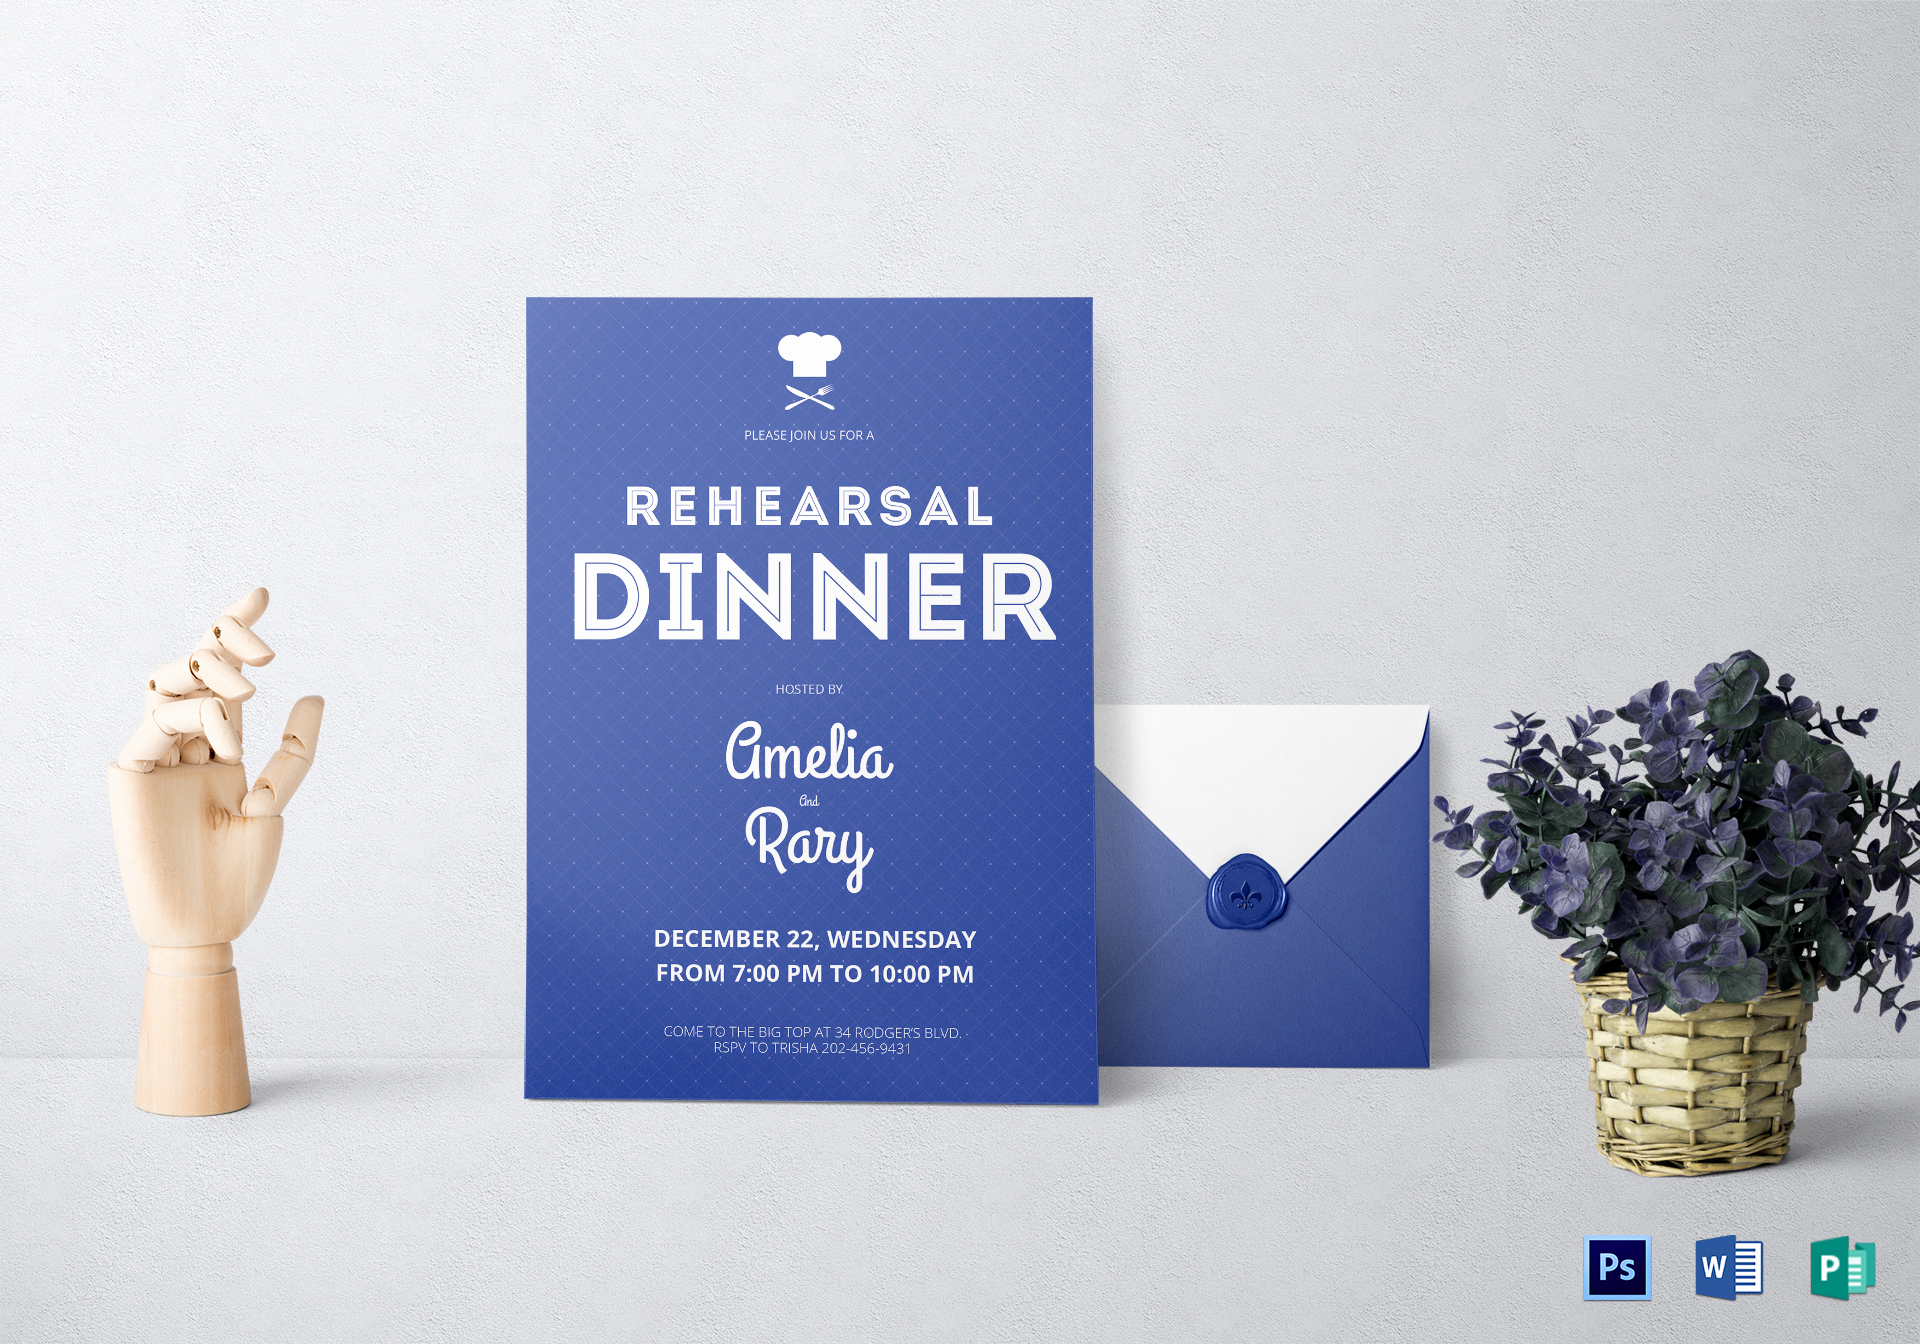 Rehearsal Dinner Invitation Template Word Lovely Rehearsal Dinner Invitation Design Template In Word Psd